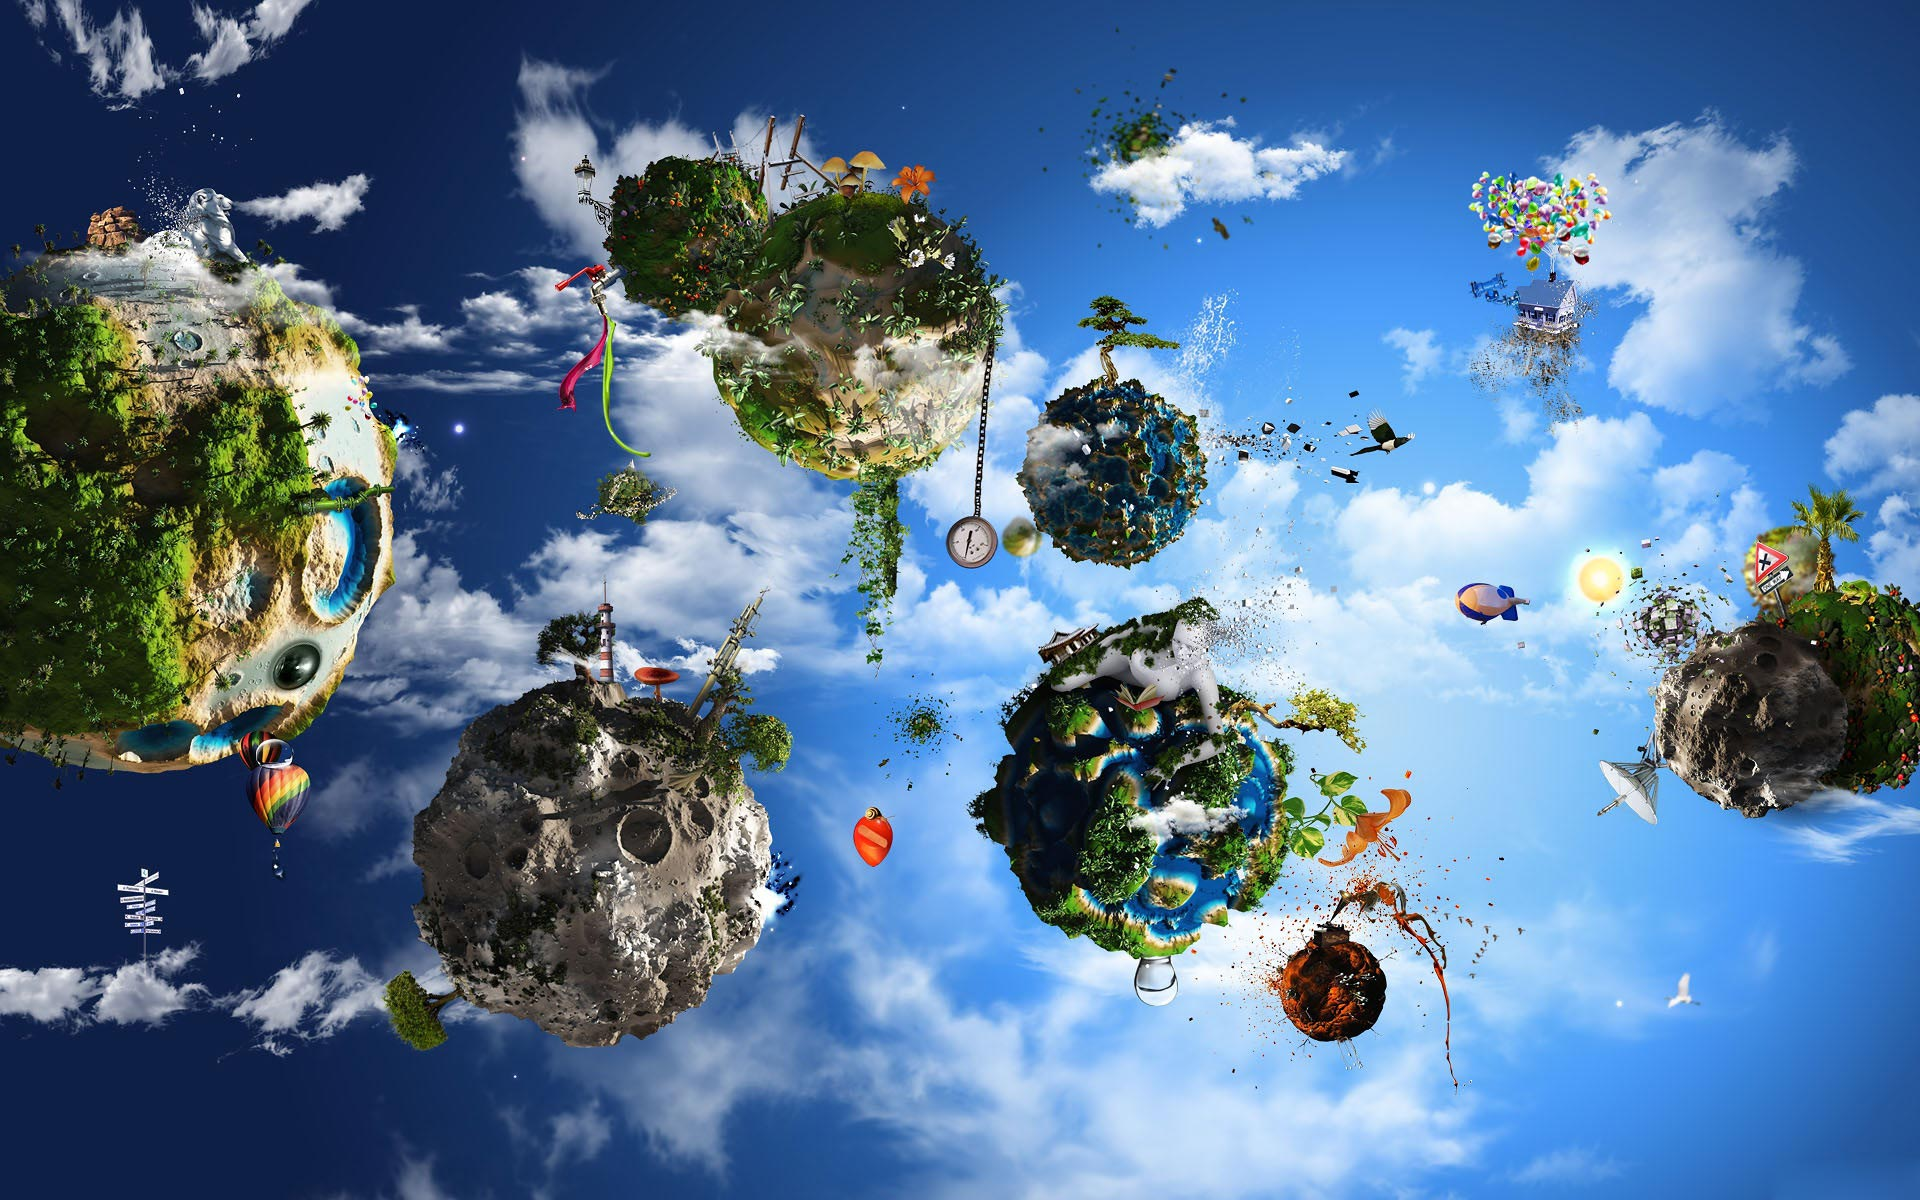 Planets hd Desktop Wallpaper and make this wallpaper for your desktop 1920x1200